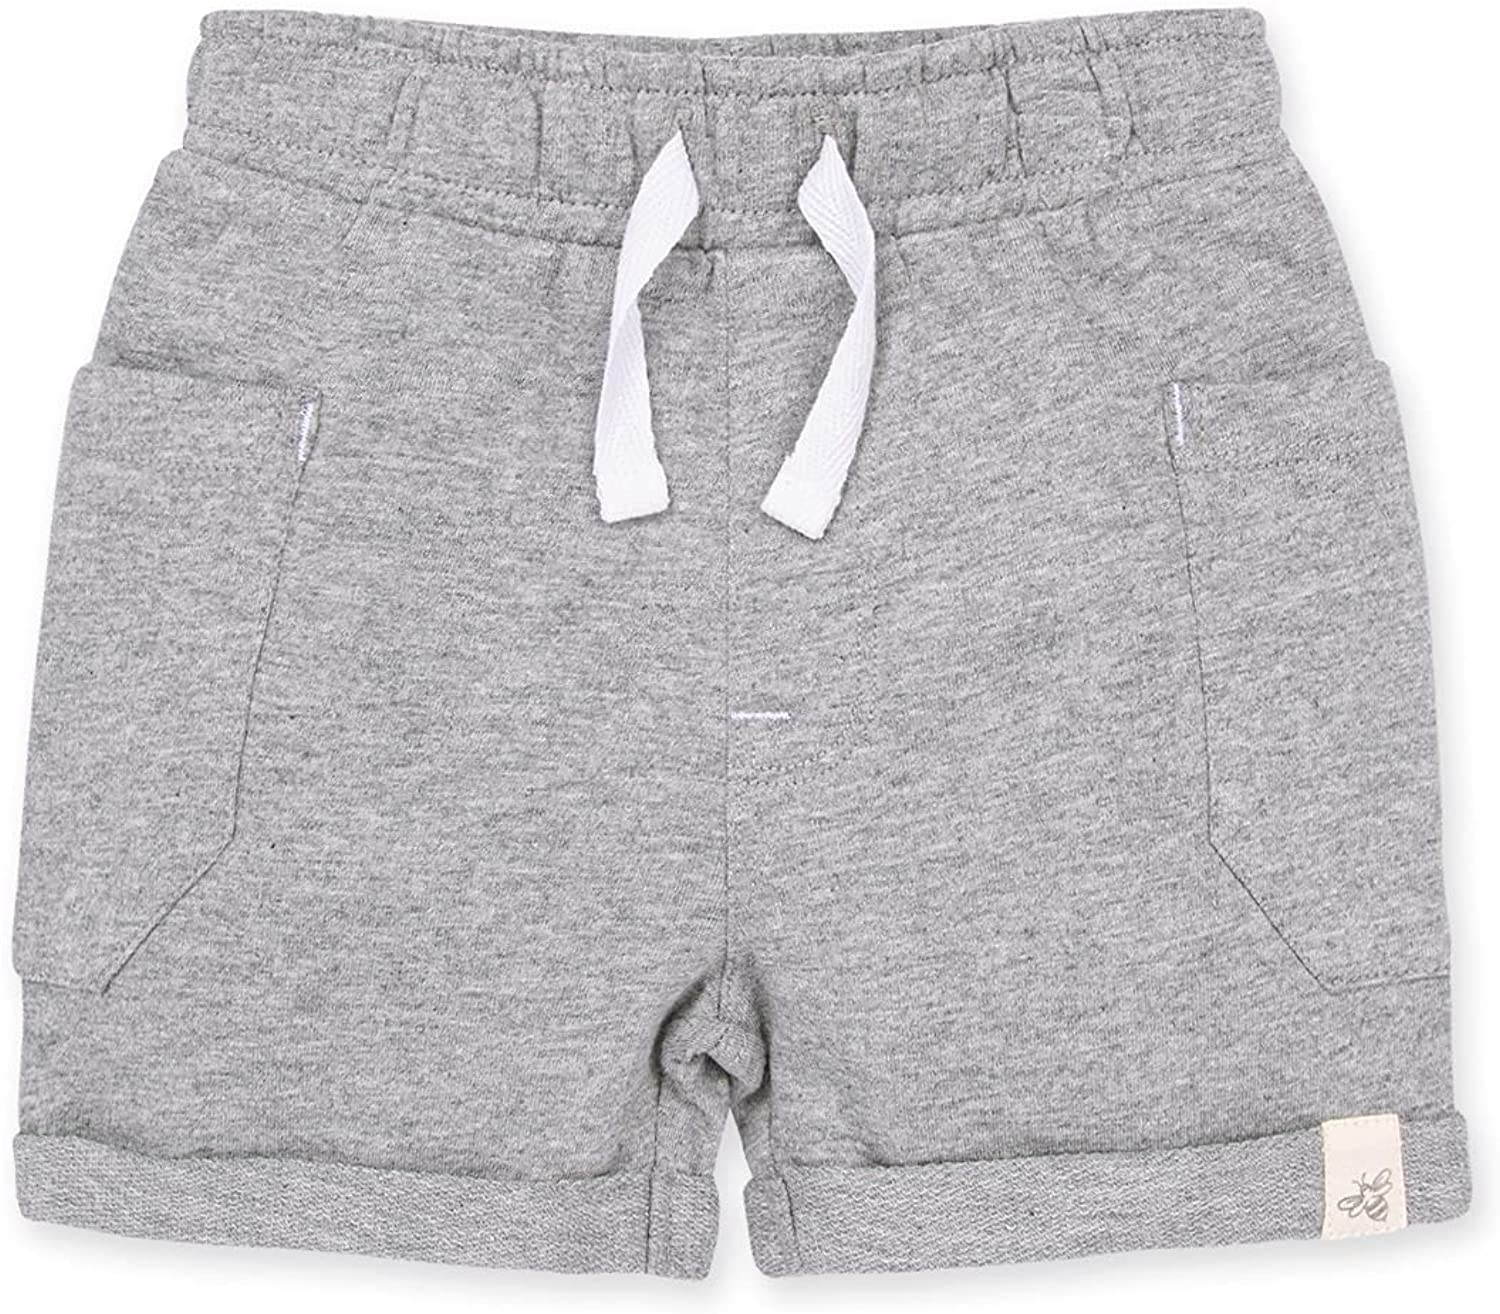 Burt's Bees Baby Baby Shorts, Infant Knit Bottoms, 100% Organic Cotton